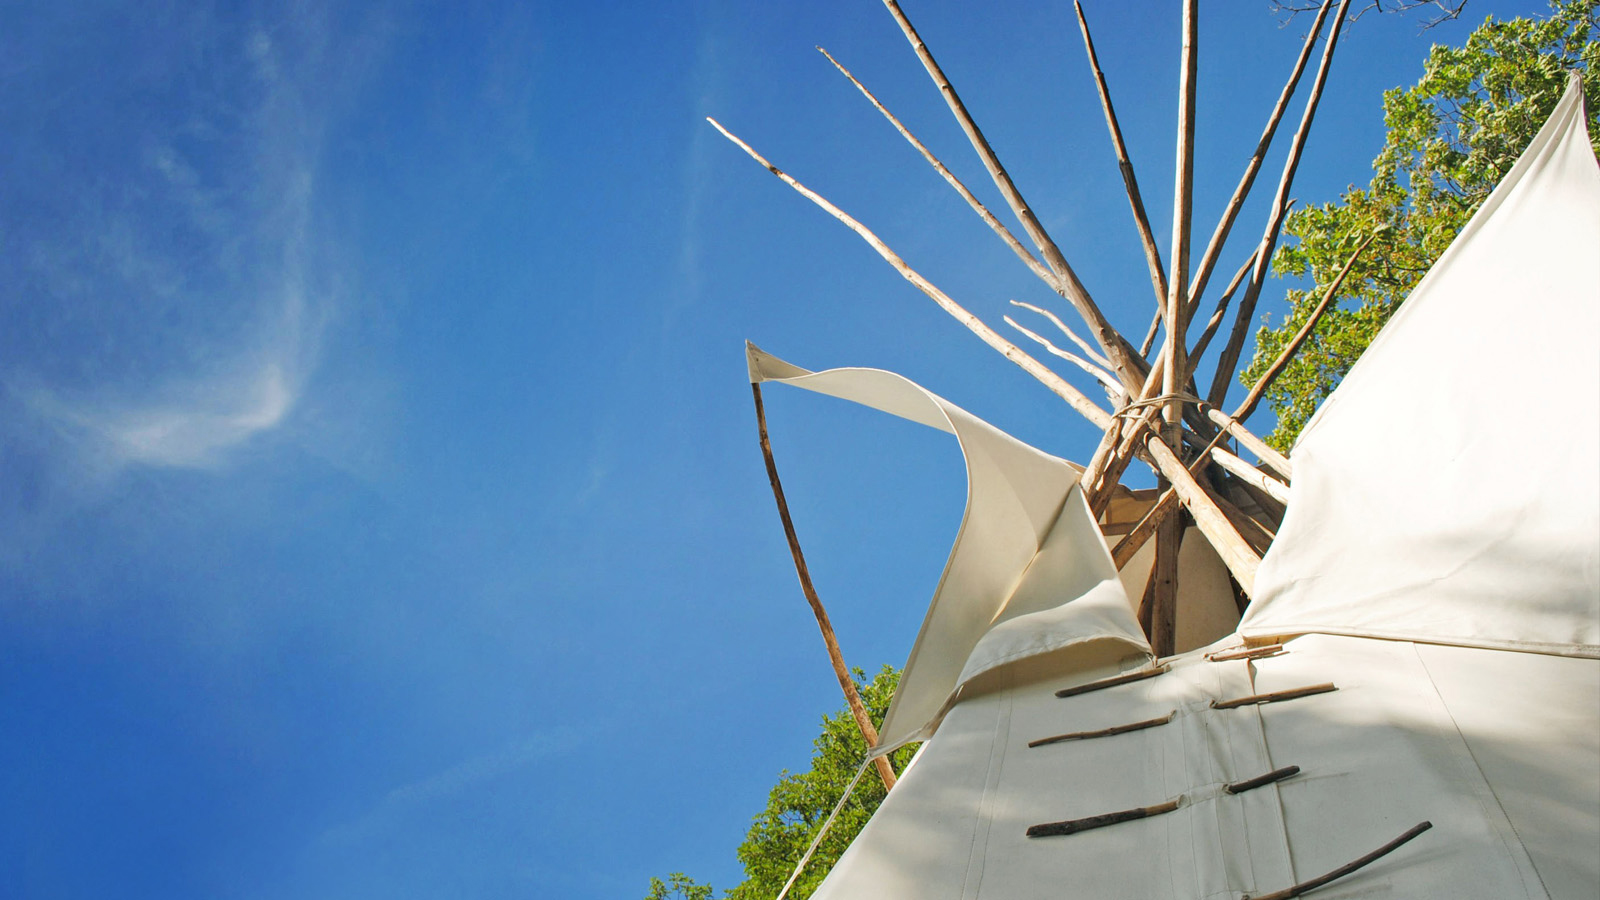 Assembly of First Nations Welcomes Court Ruling to Uphold Federal Carbon Pricing Plan